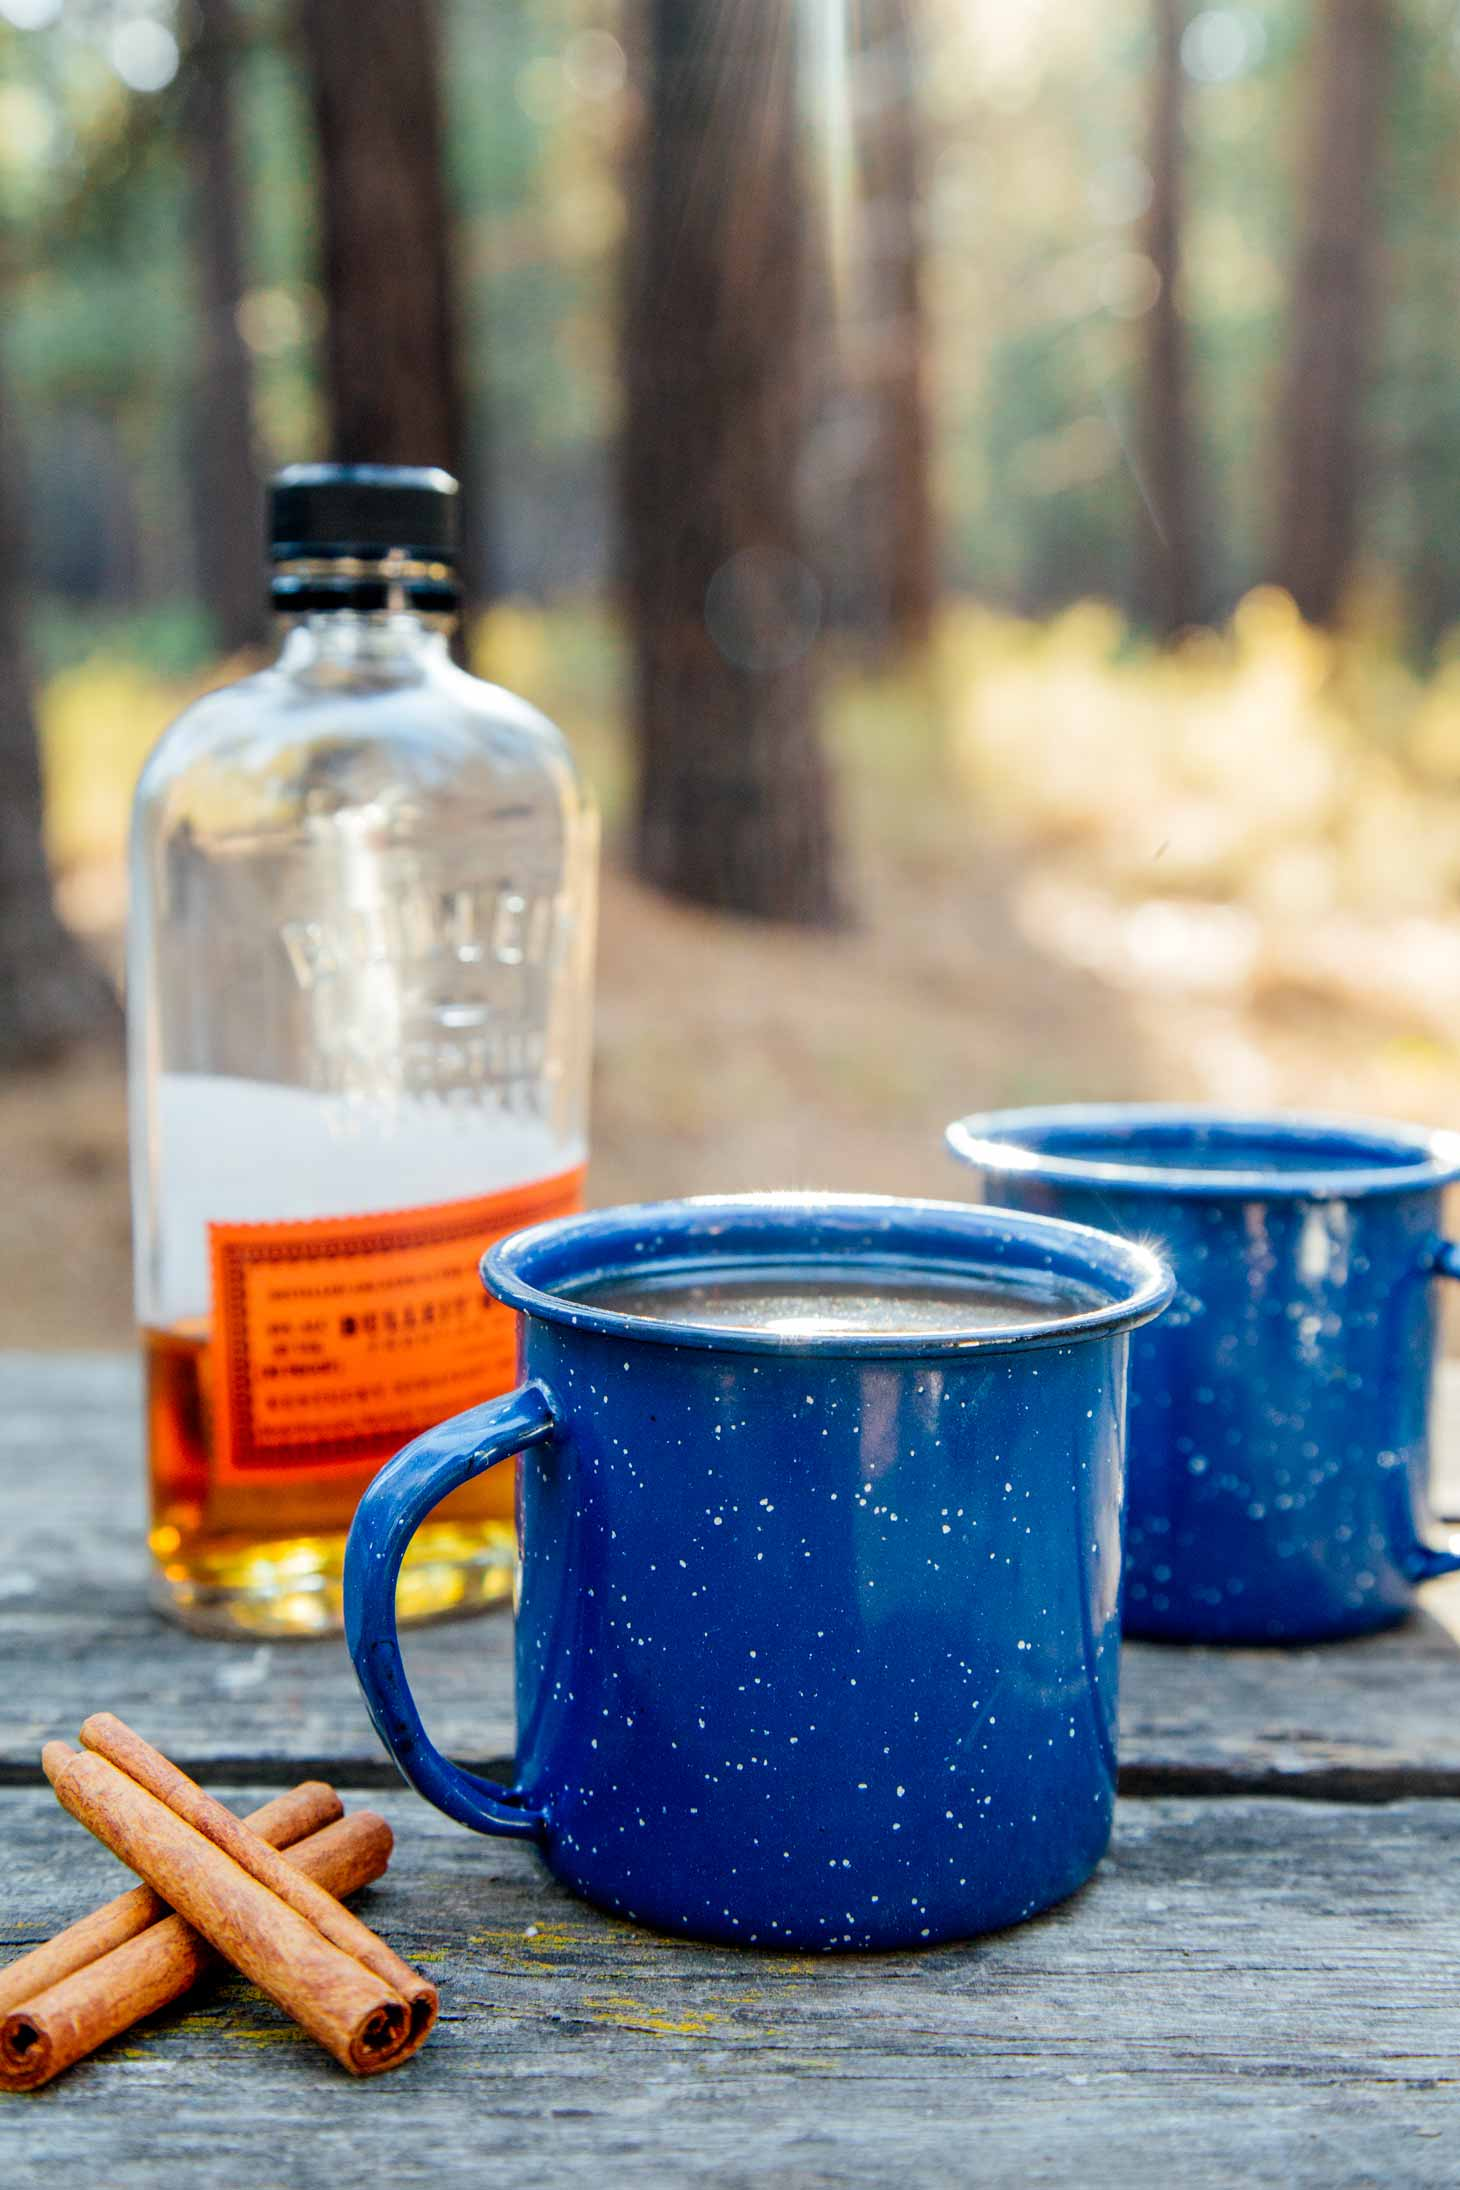 Forest scene with two camping mugs of spiked apple cider with a bottle of bourbon in the background.